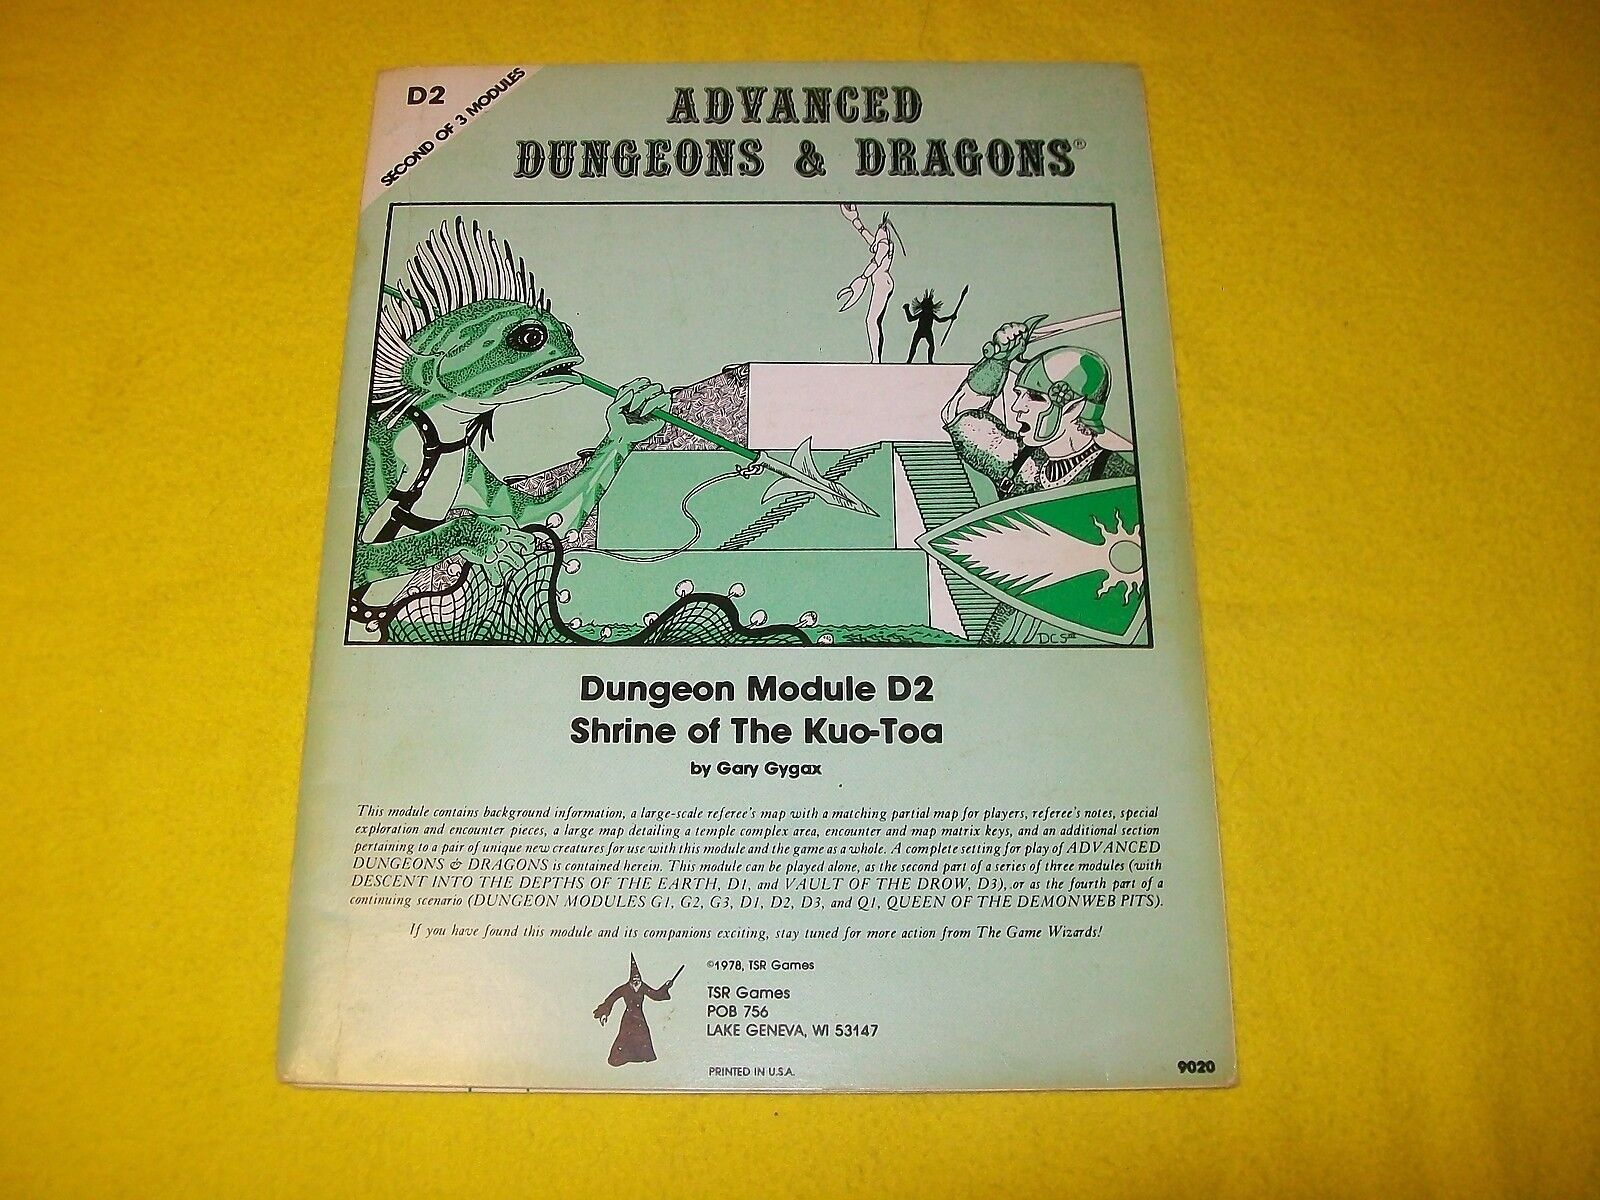 D2 SHRINE OF THE KUO-TOA DUNGEONS & DRAGONS AD&D 9020 - 12 MONOCHROME 1ST PRINT